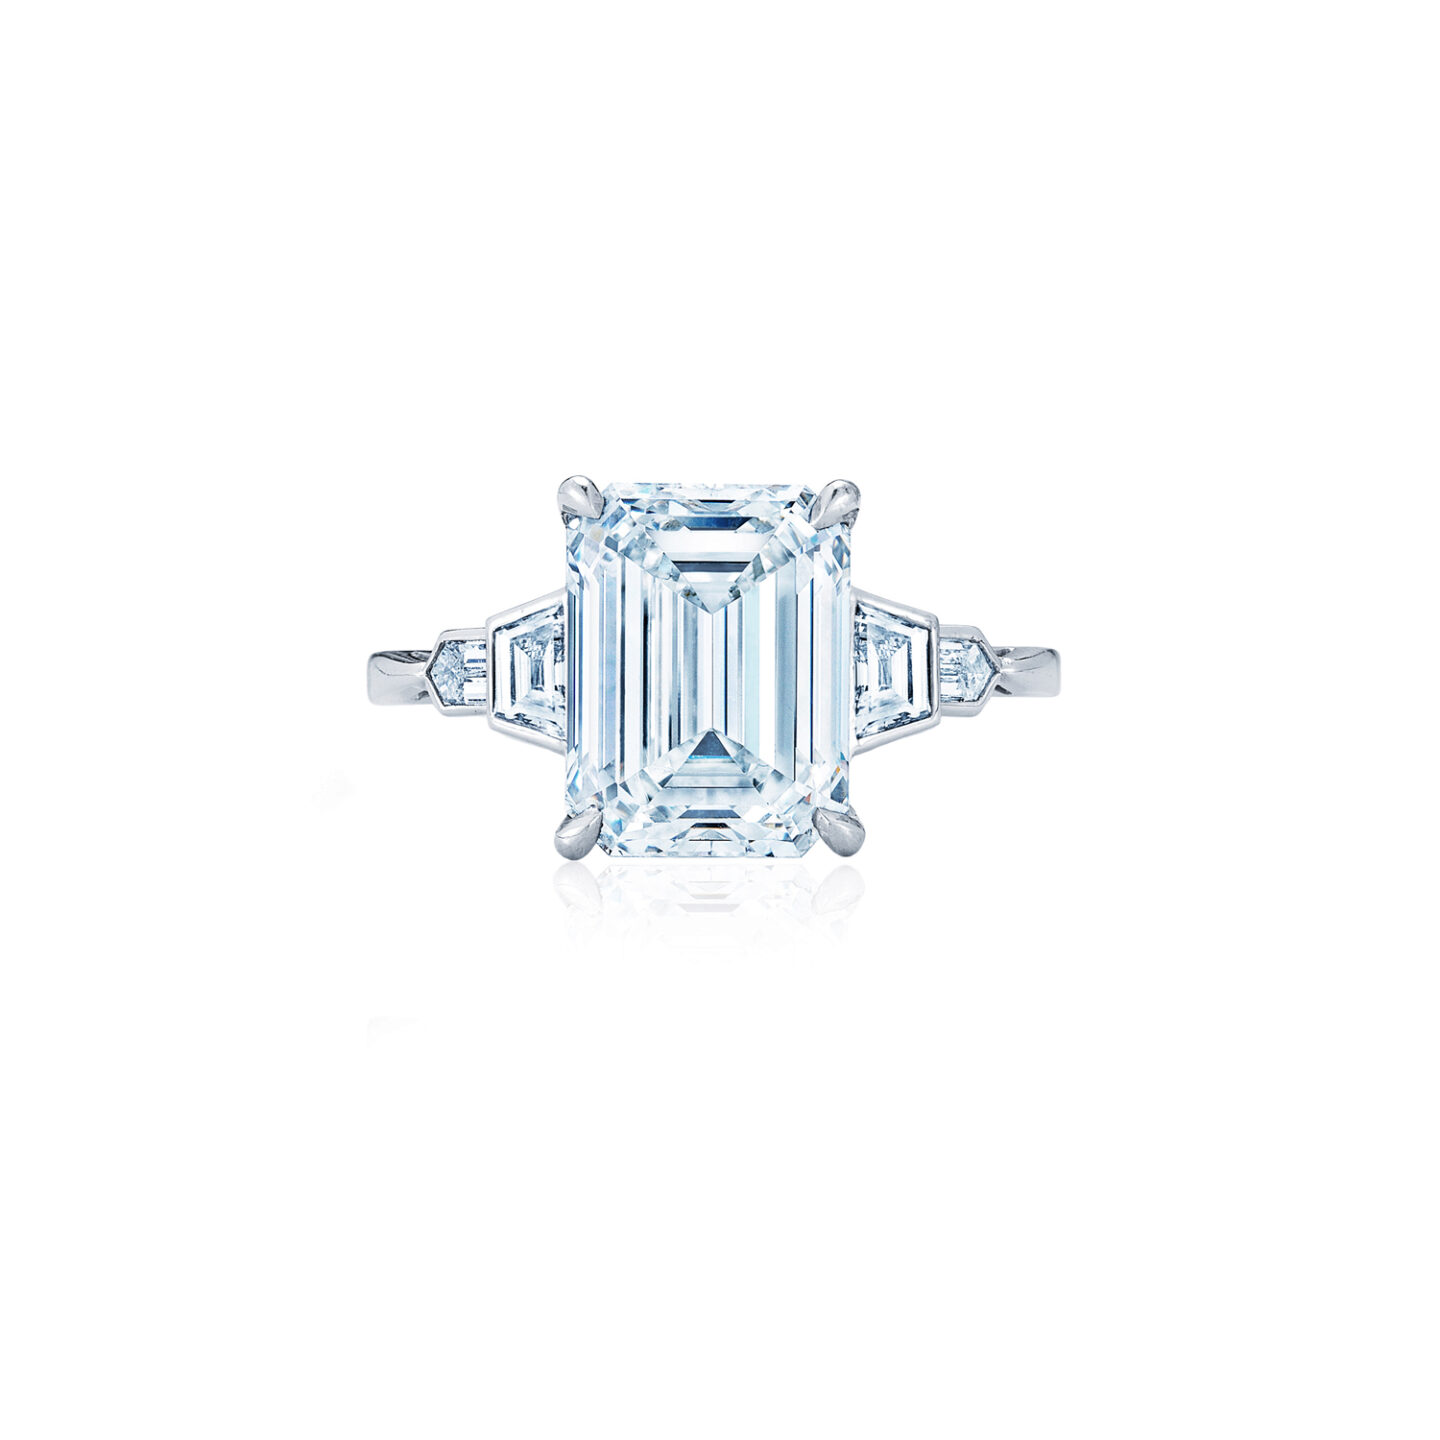 Emerald Cut Diamond Engagement Ring With Bezel Set Trapezoid And Bullet Side Stones In Platinum